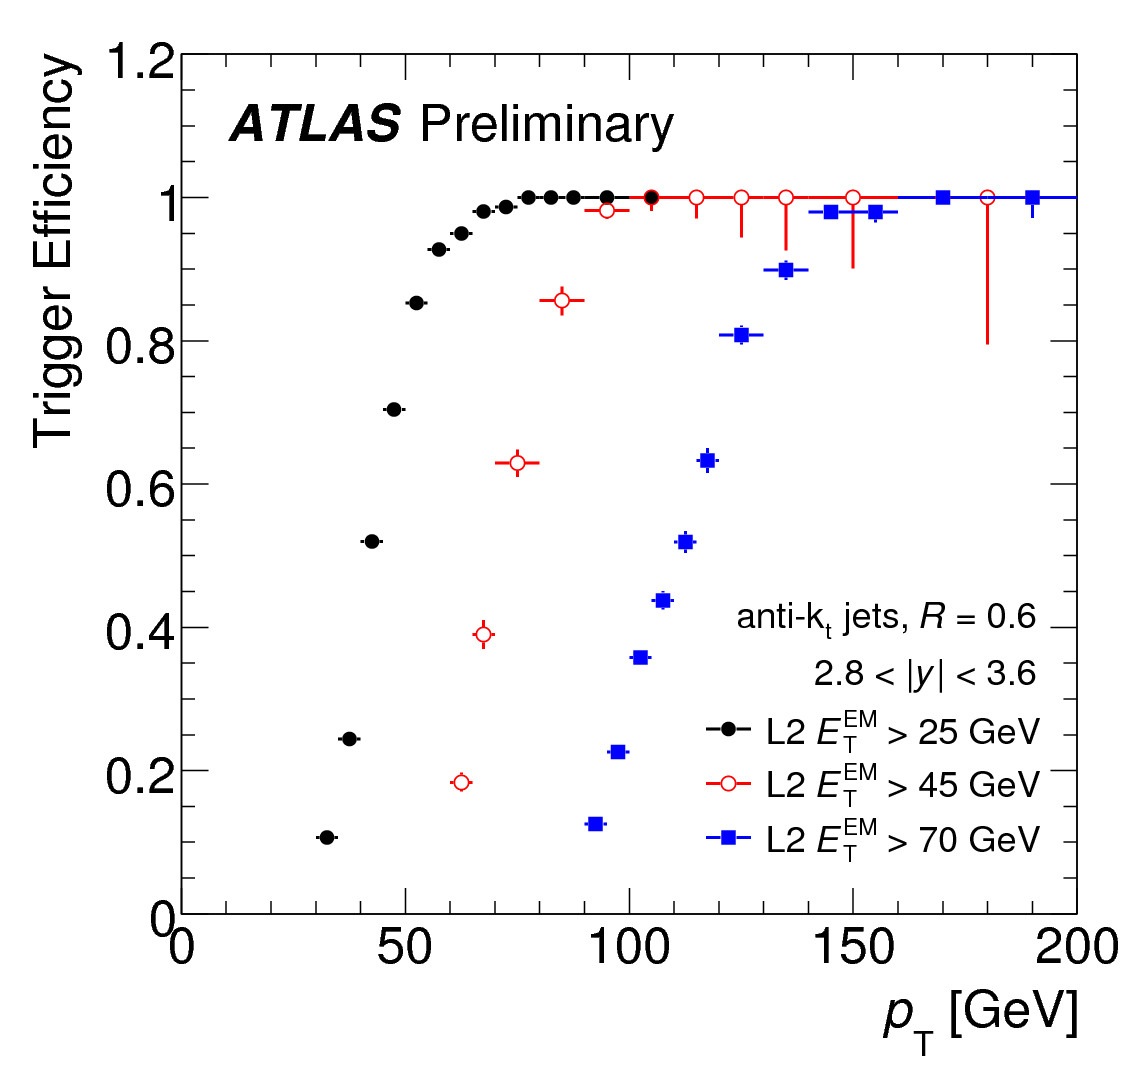 https://atlas.web.cern.ch/Atlas/GROUPS/PHYSICS/CONFNOTES/ATLAS-CONF-2011-047/fig_03a.png